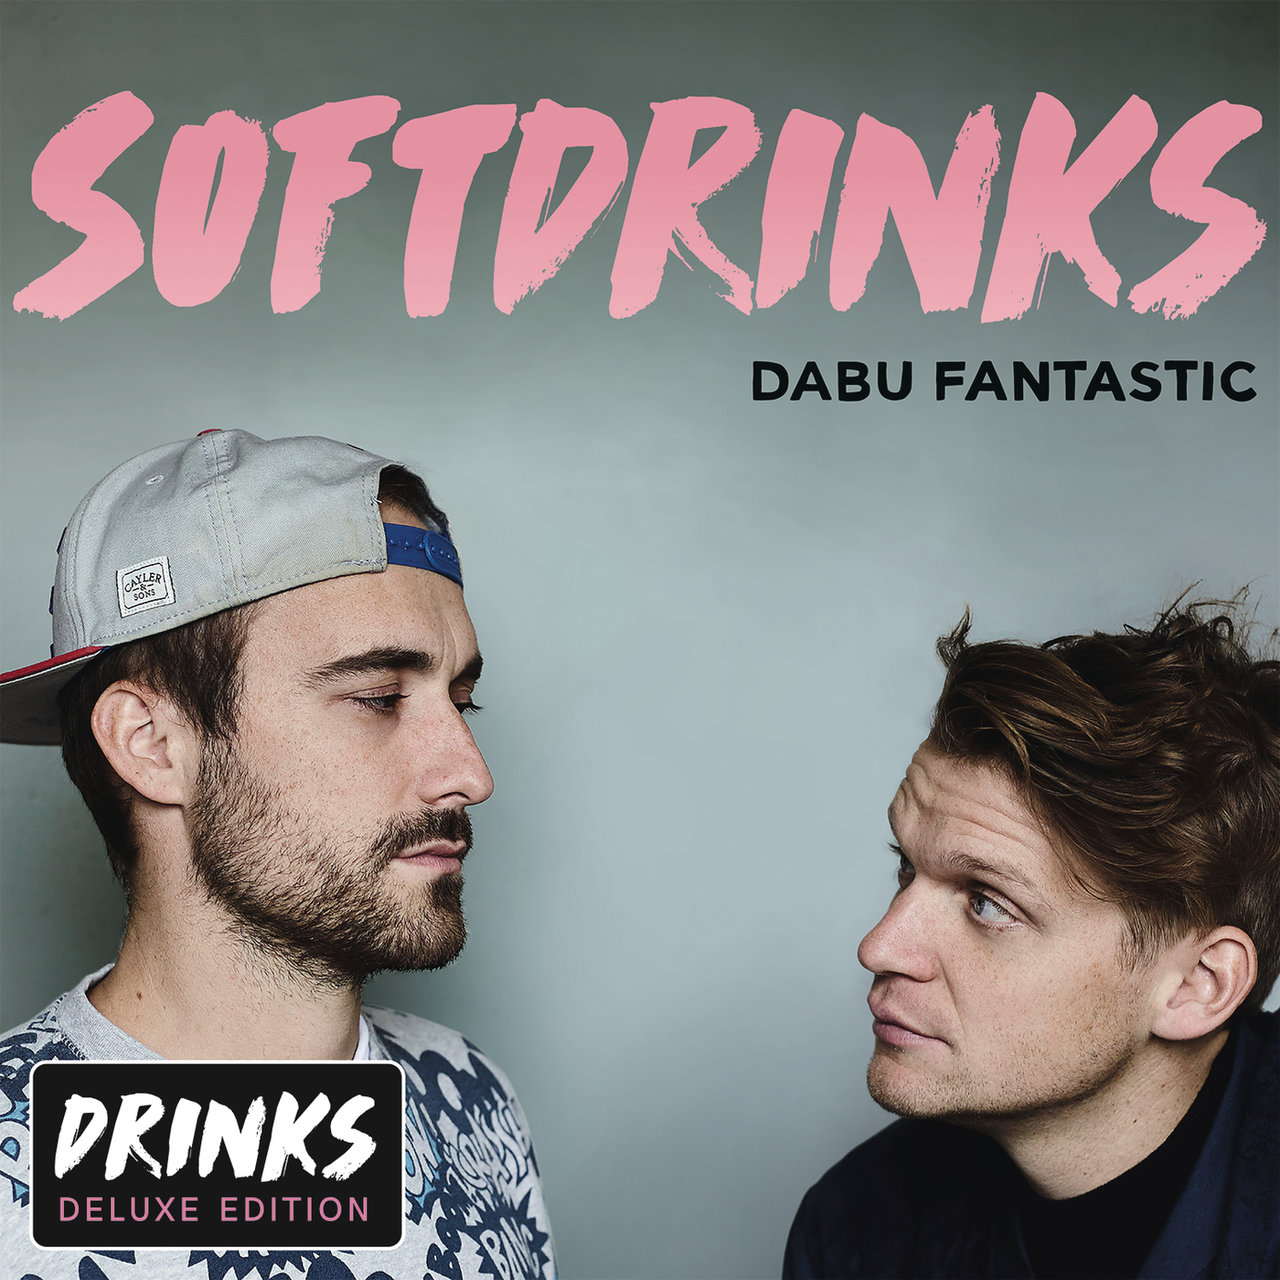 Softdrinks (Drinks Deluxe Edition)